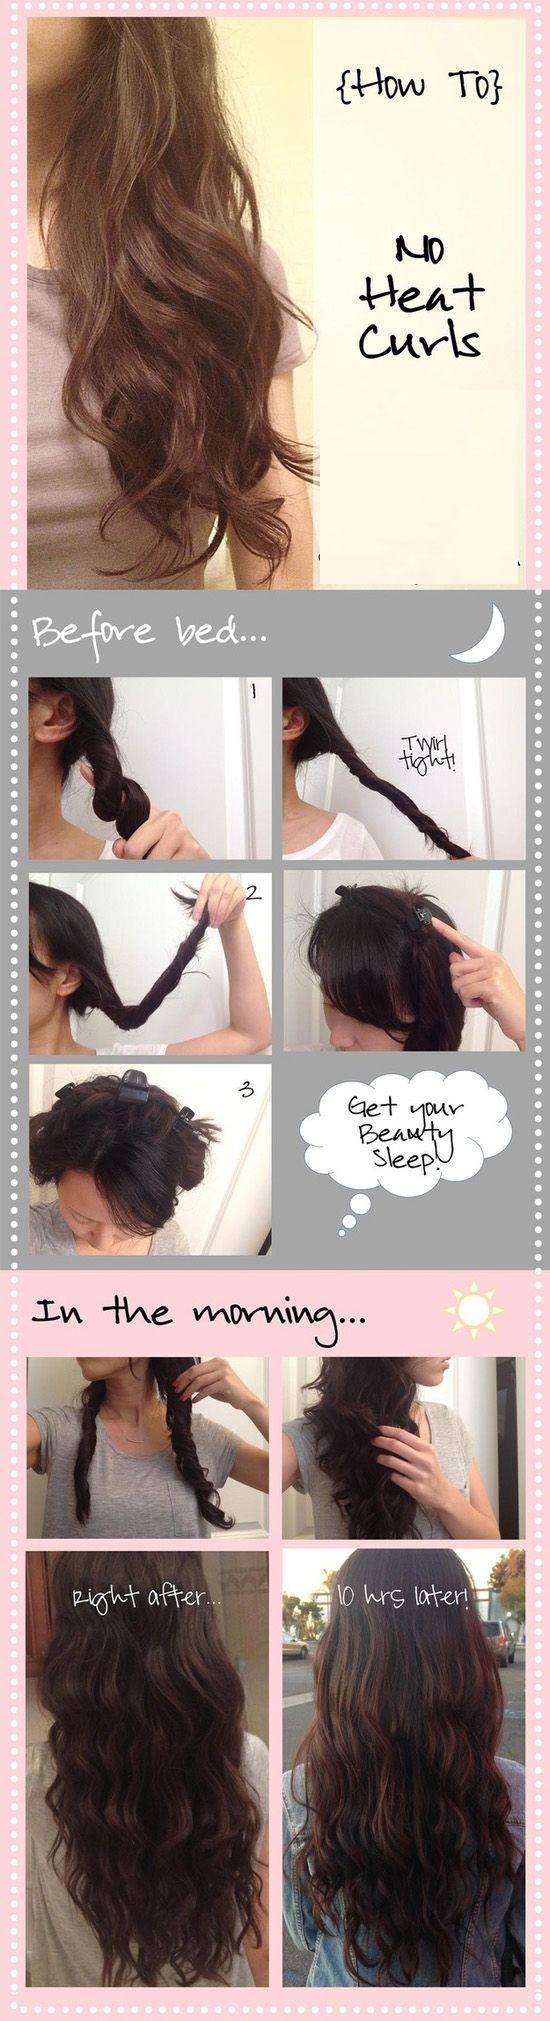 Best images about Hair styles on Pinterest My hair Pony tails